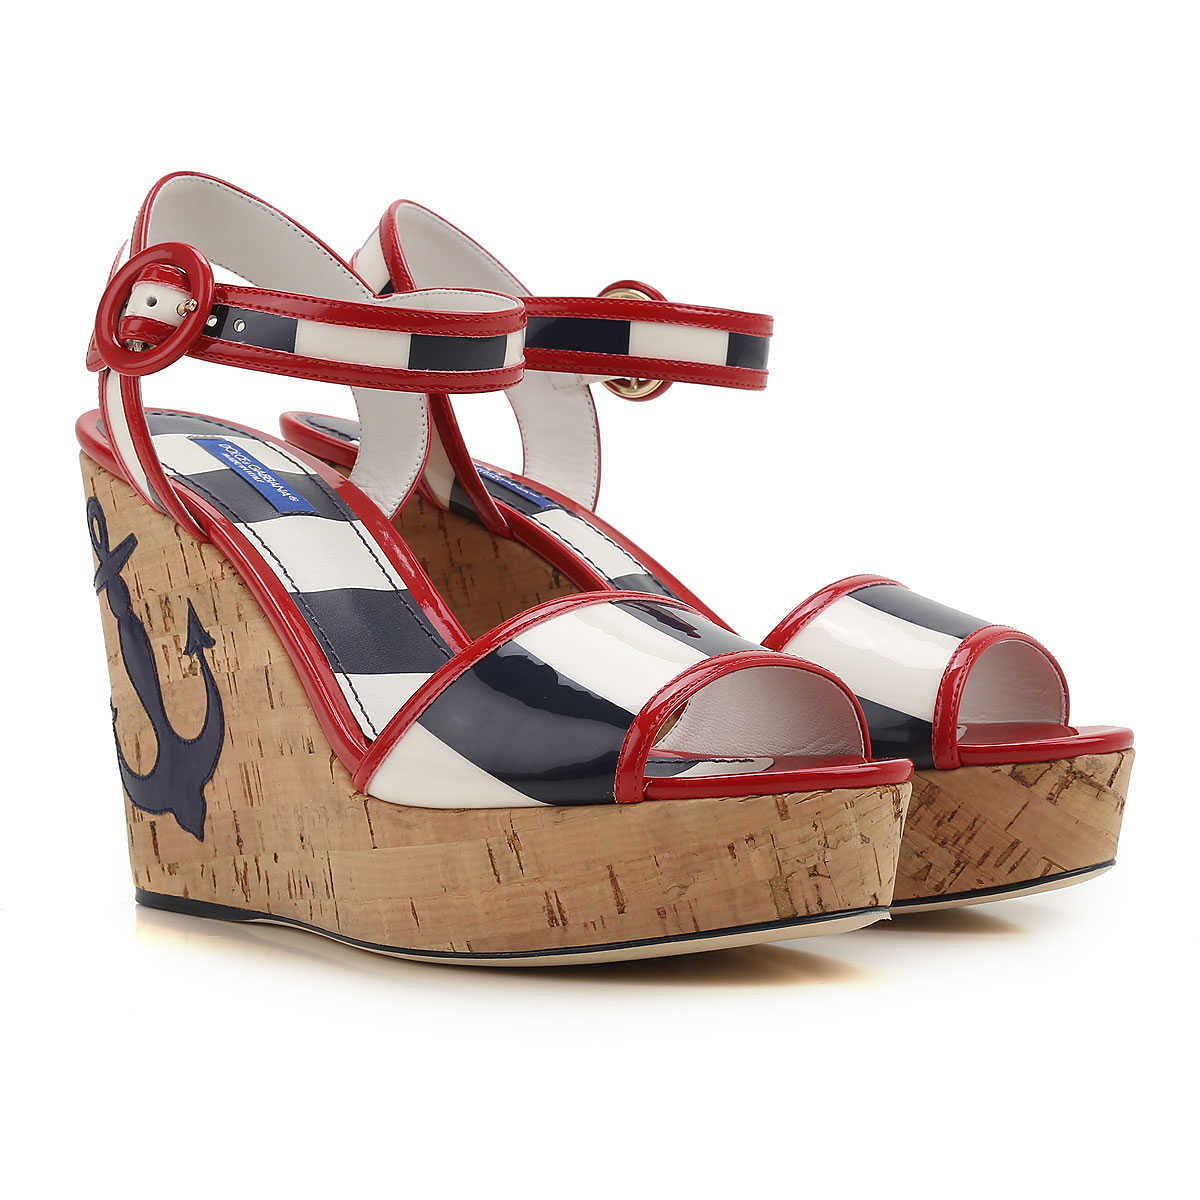 Dolce & Gabbana Wedges for Women On Sale in Outlet Red - GOOFASH